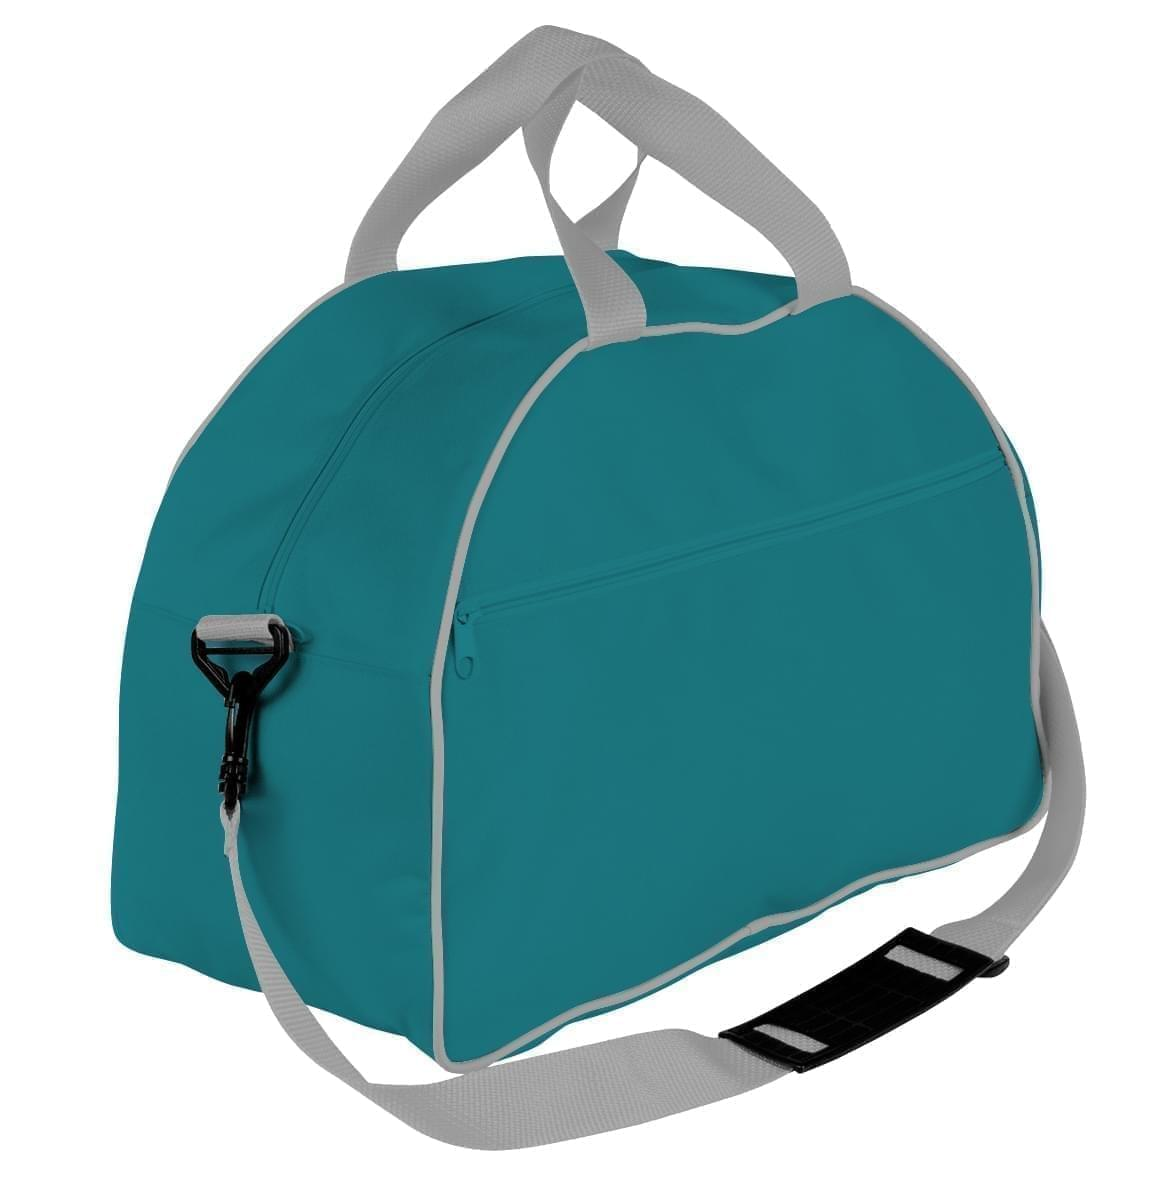 USA Made Nylon Poly Weekender Duffel Bags, Turquoise-Grey, 6PKV32JA9U